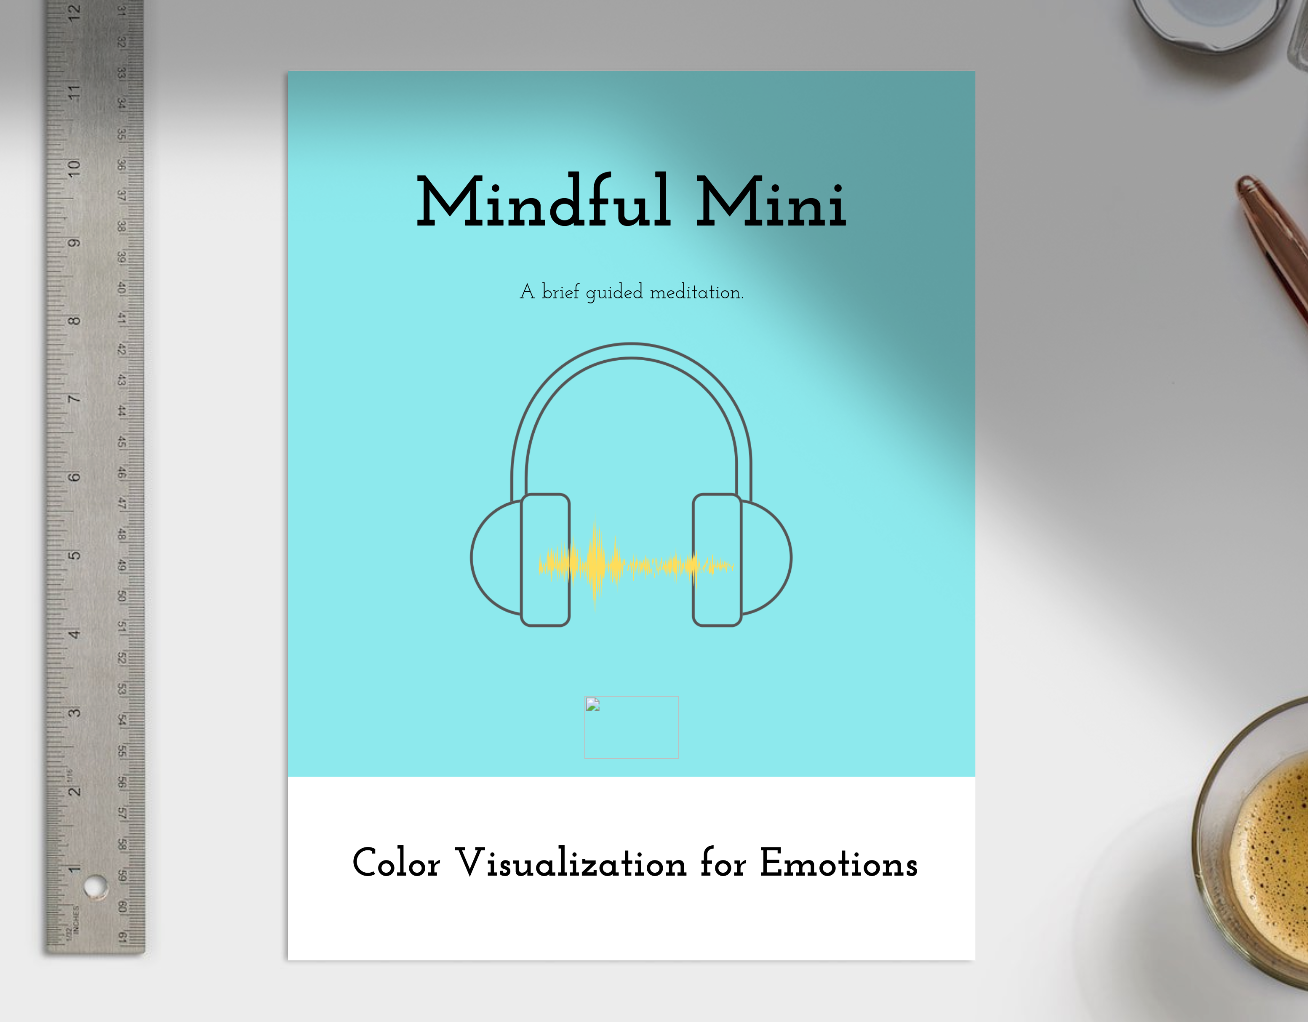 Mindful Minis - Brief guided meditations.